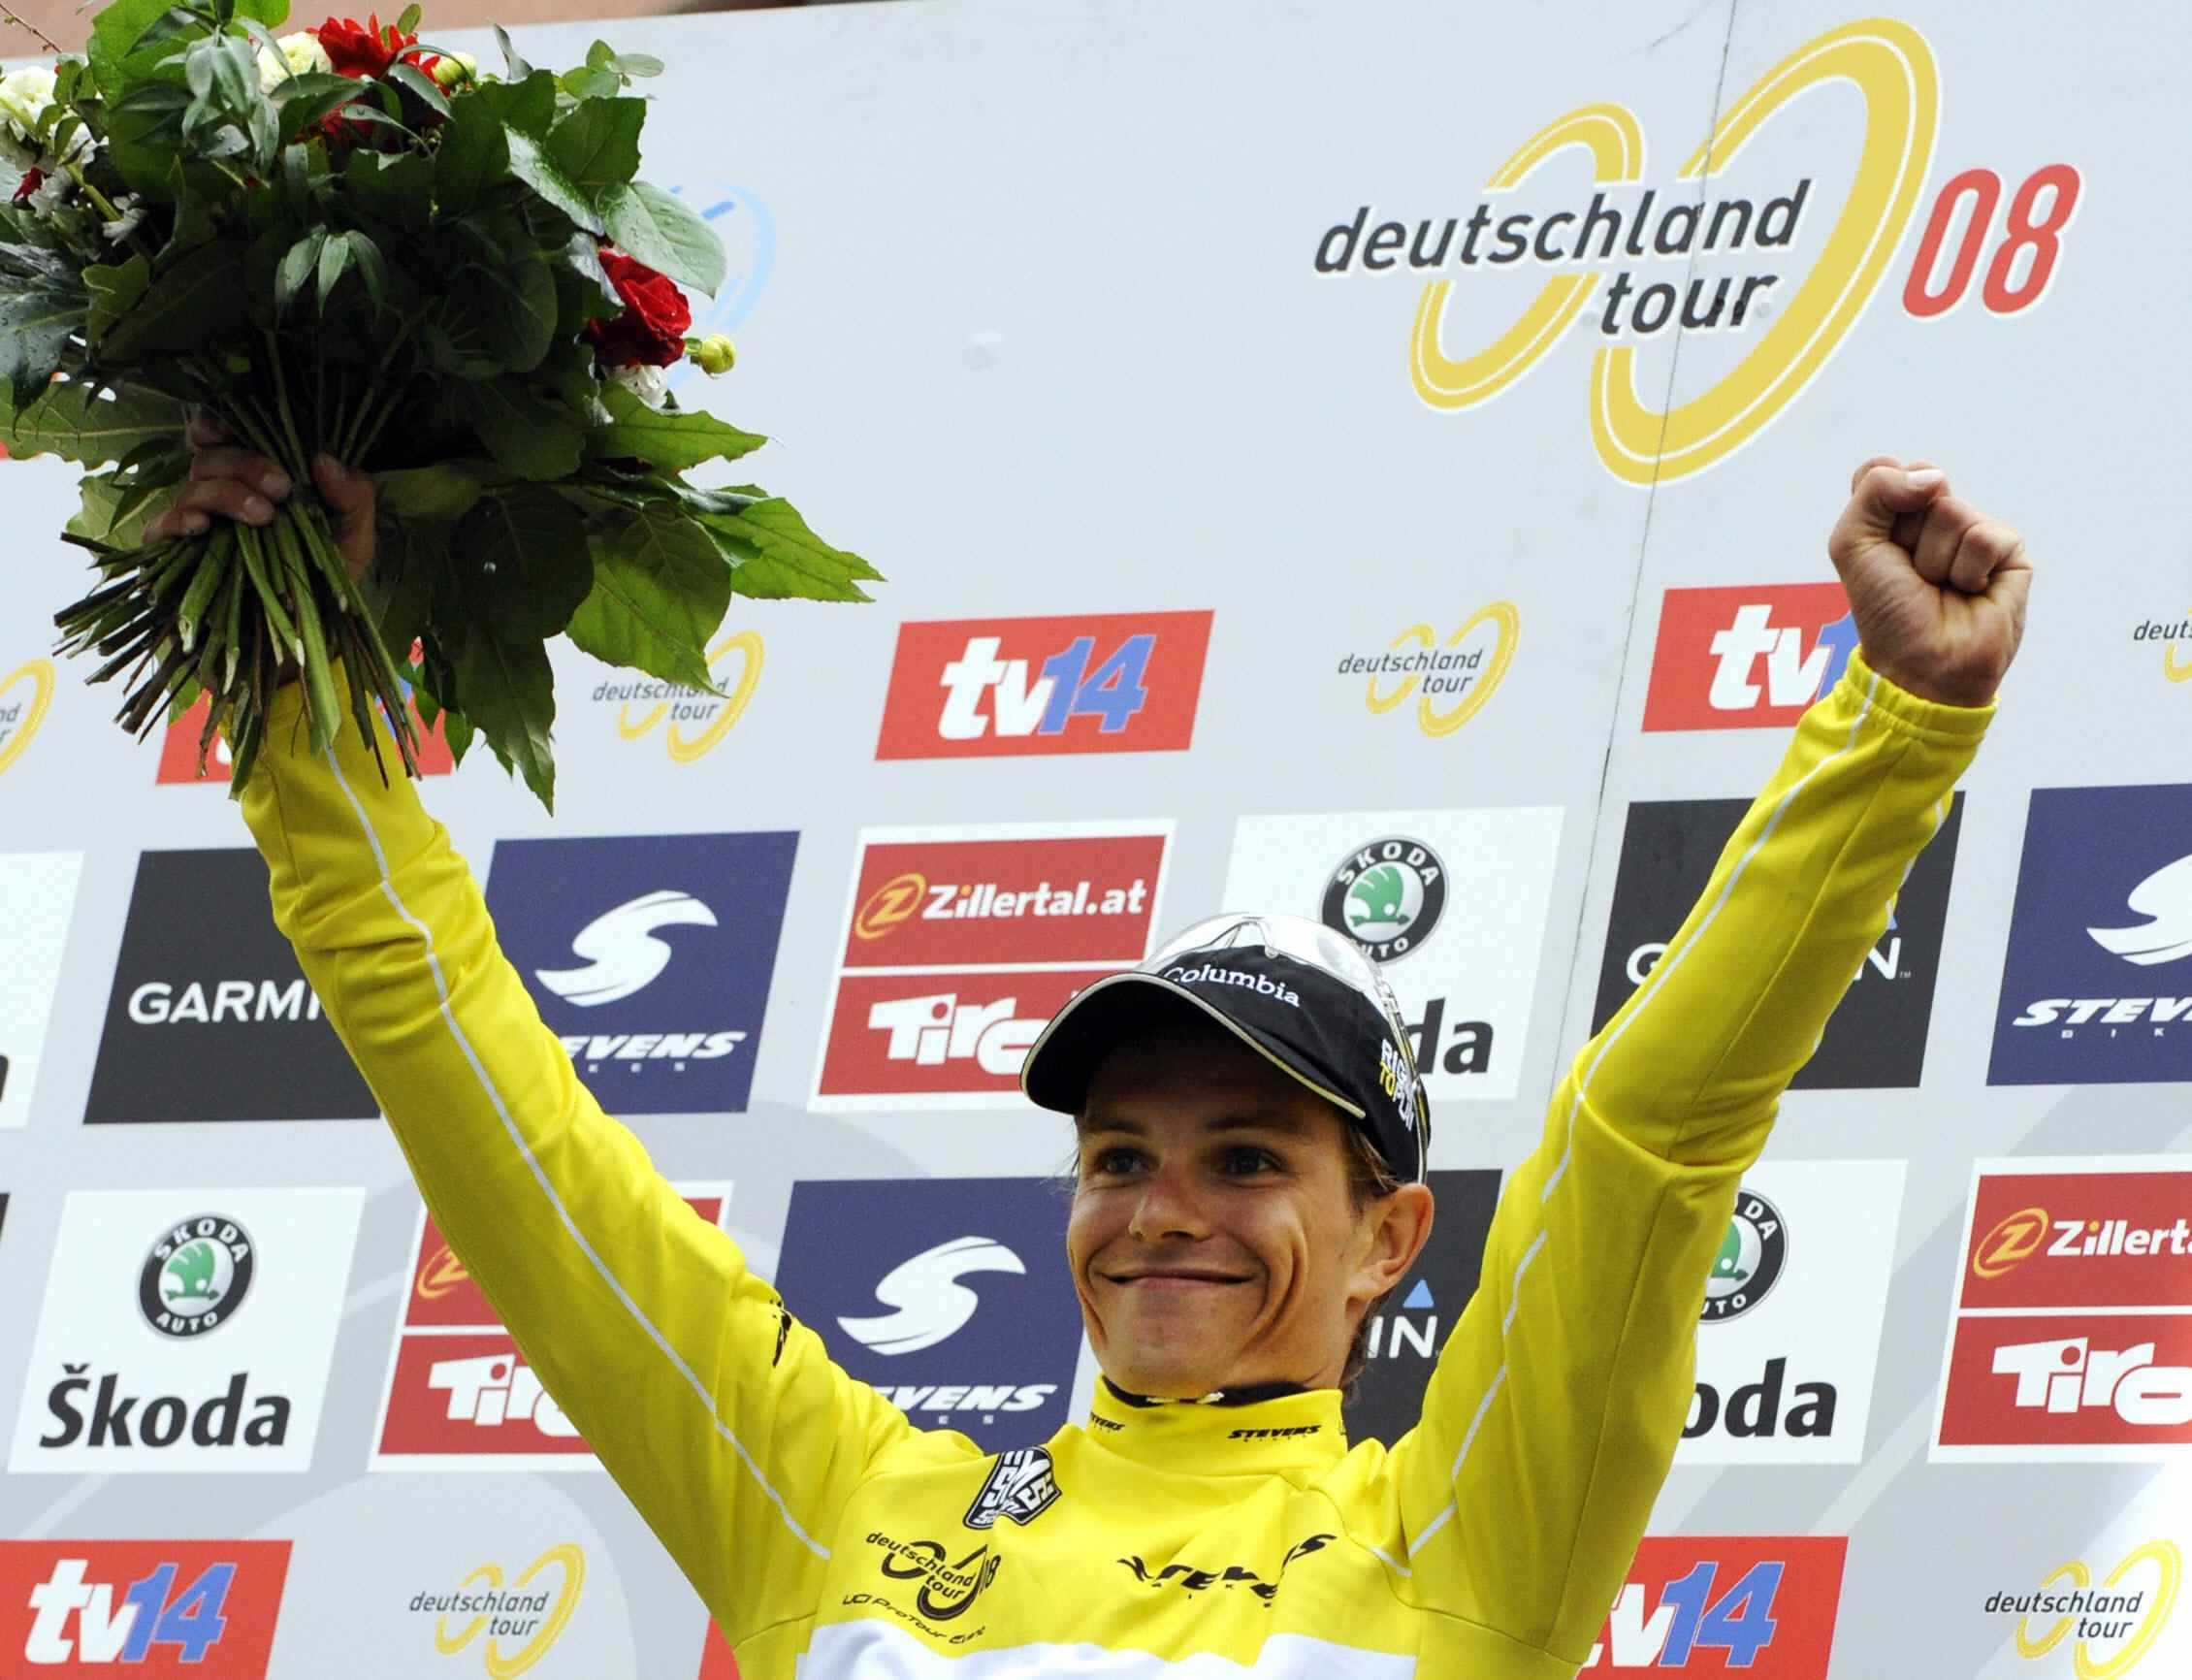 German cyclist Linus Gerdemann won the 2008 Tour of Germany for Team Columbia.